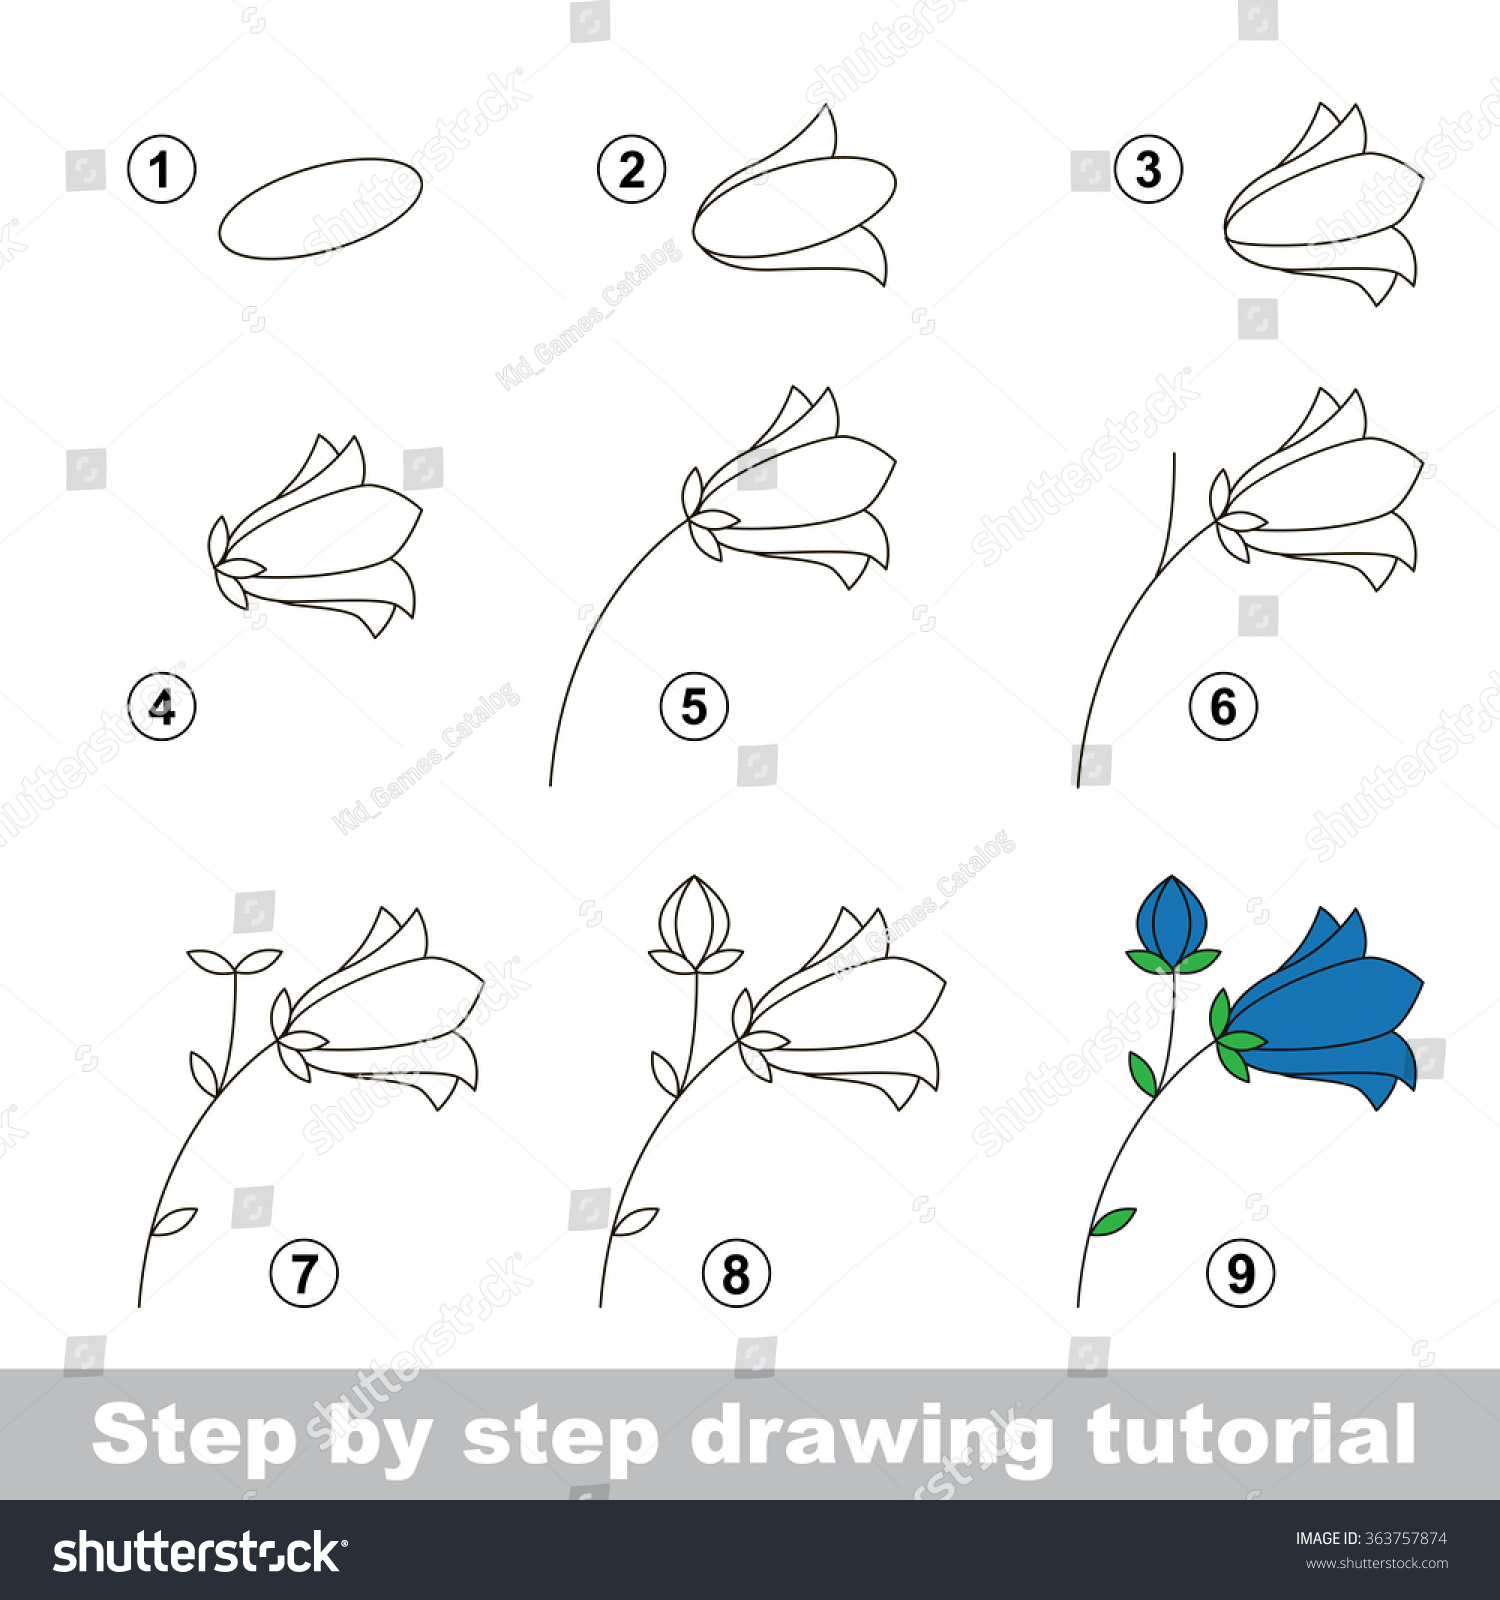 Uncategorized Flower To Draw Step By Step step by drawing tutorial vector stock 363757874 kid game how to draw a bluebell flower